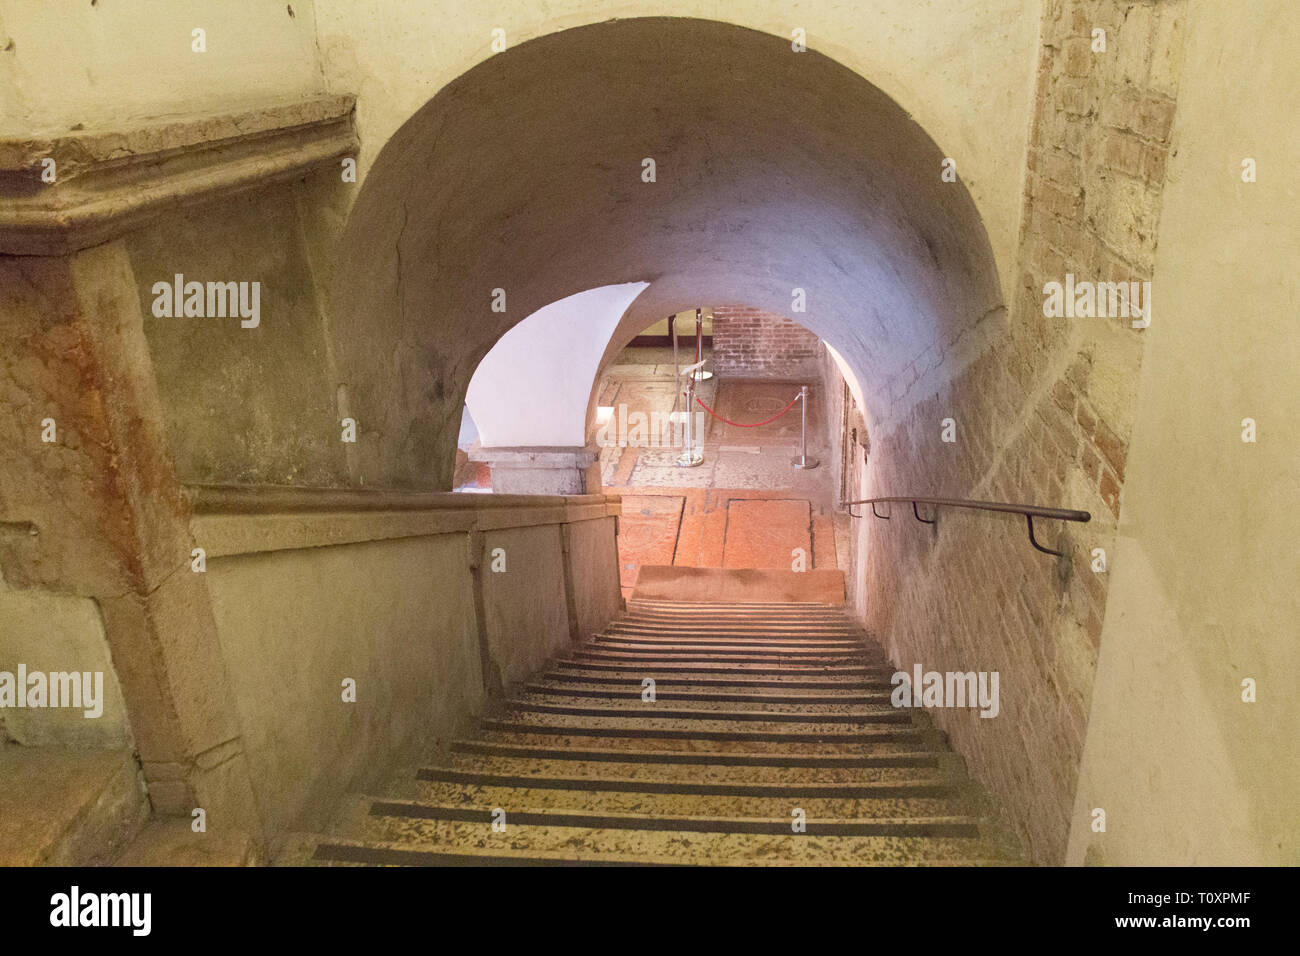 Italy, Verona - December 08 2017: the view of staircases in San Fermo Maggiore Church on December 08 2017, Veneto, Italy. - Stock Image